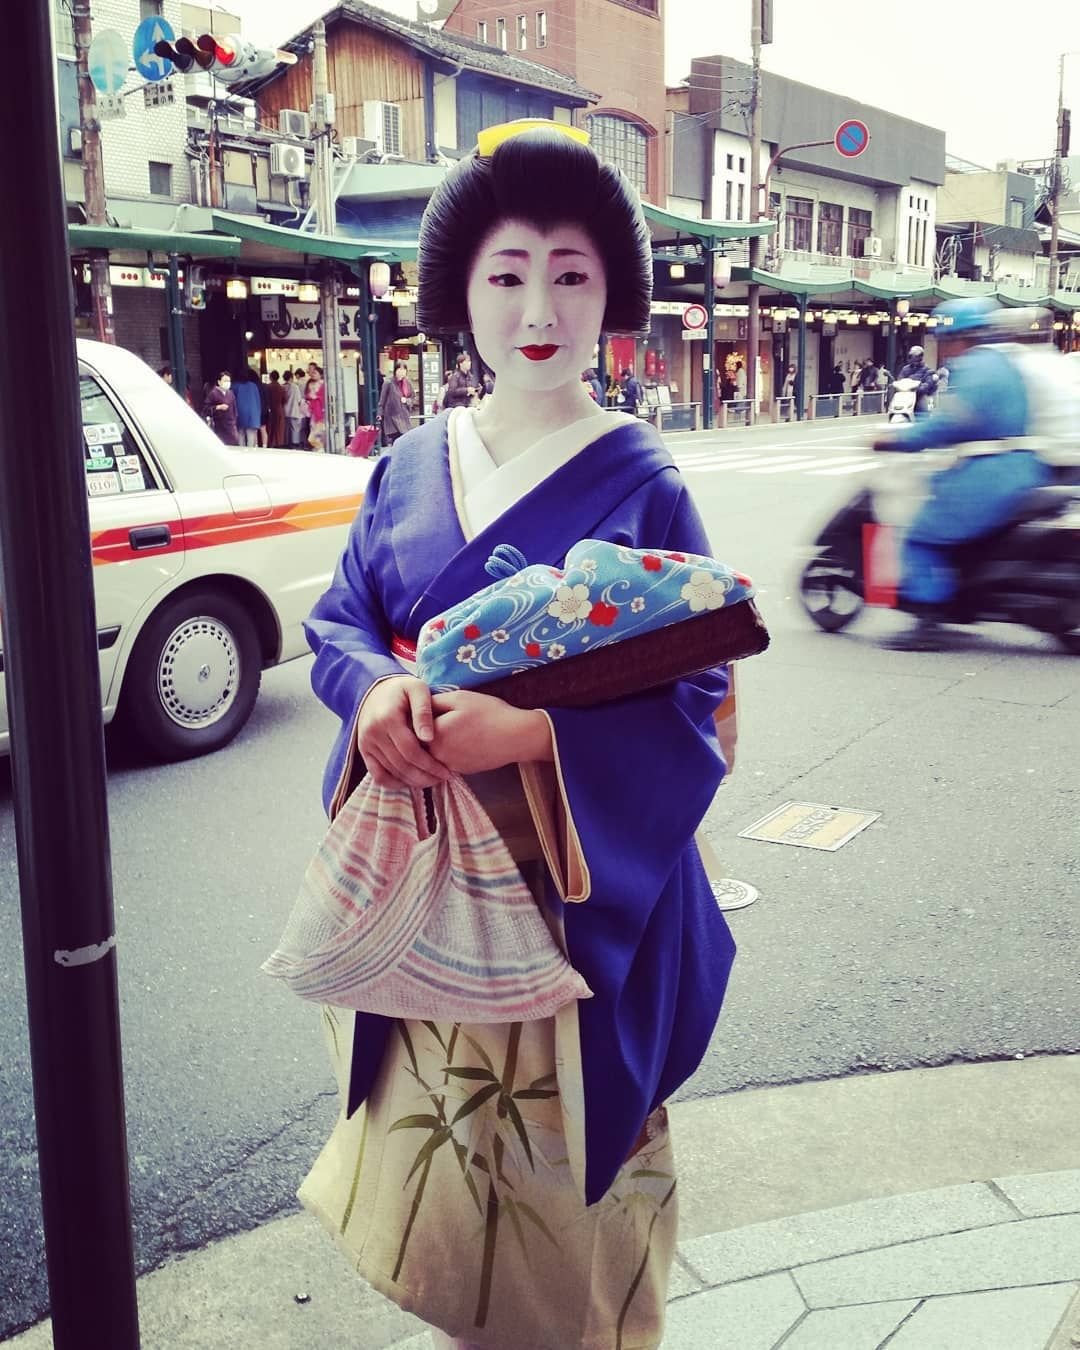 Nothing says you're in Kyoto quite like seeing a Geisha going about her visits . . . #Geisha #kyoto #Japan #Gion #beauty #traditional #kimono #onlyinjapan #artform #geiko #maiko #geishacapital #internationalwomensday #culturetrip #speechlessplaces